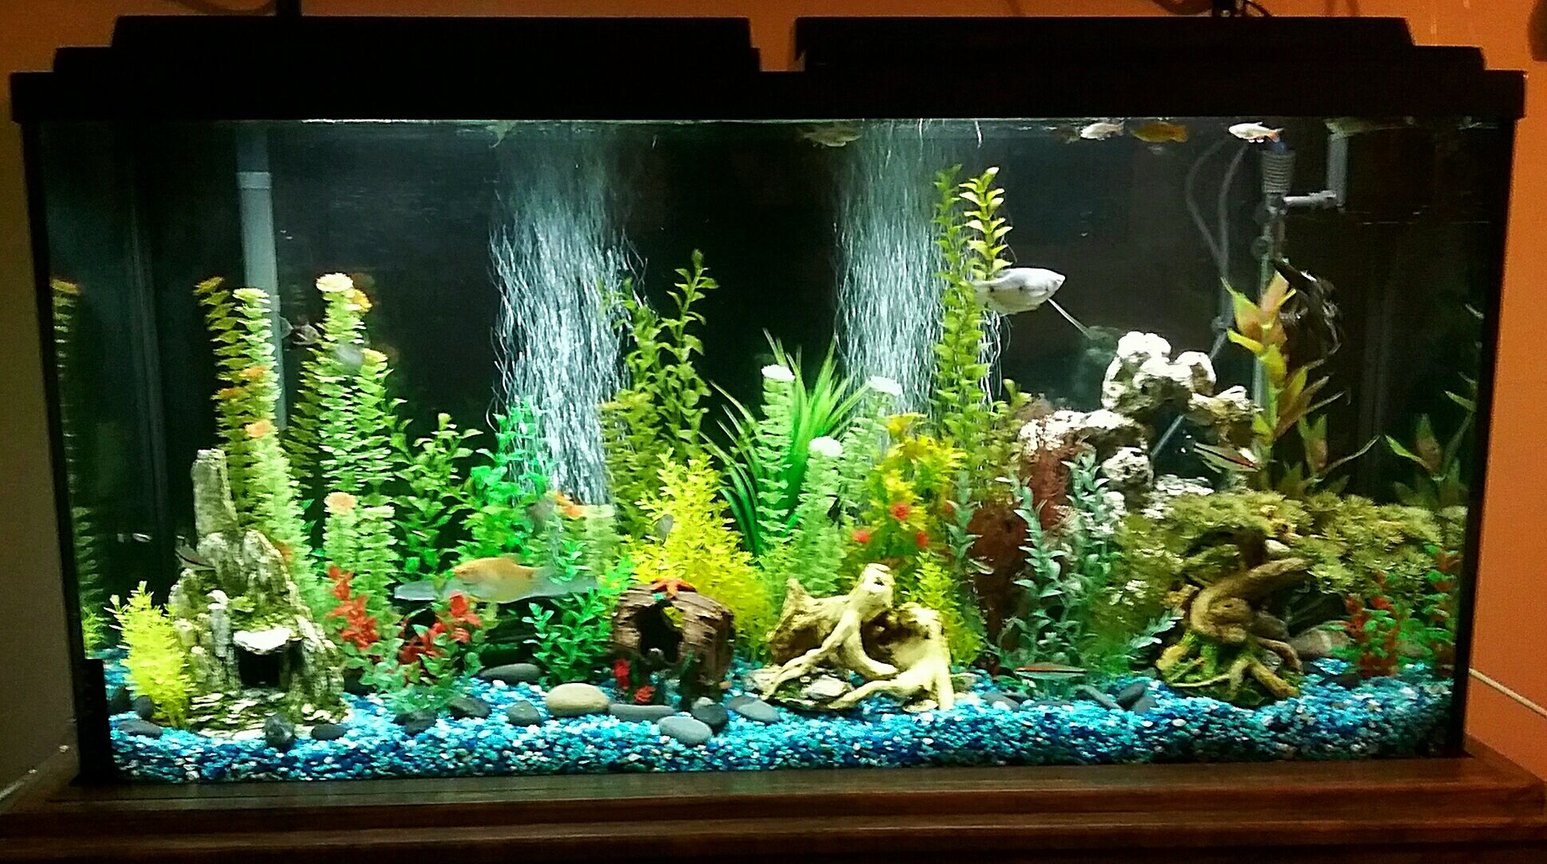 65 gallons freshwater fish tank (mostly fish and non-living decorations) - 65 gallon freshwater tank with various community fish and fake plants.